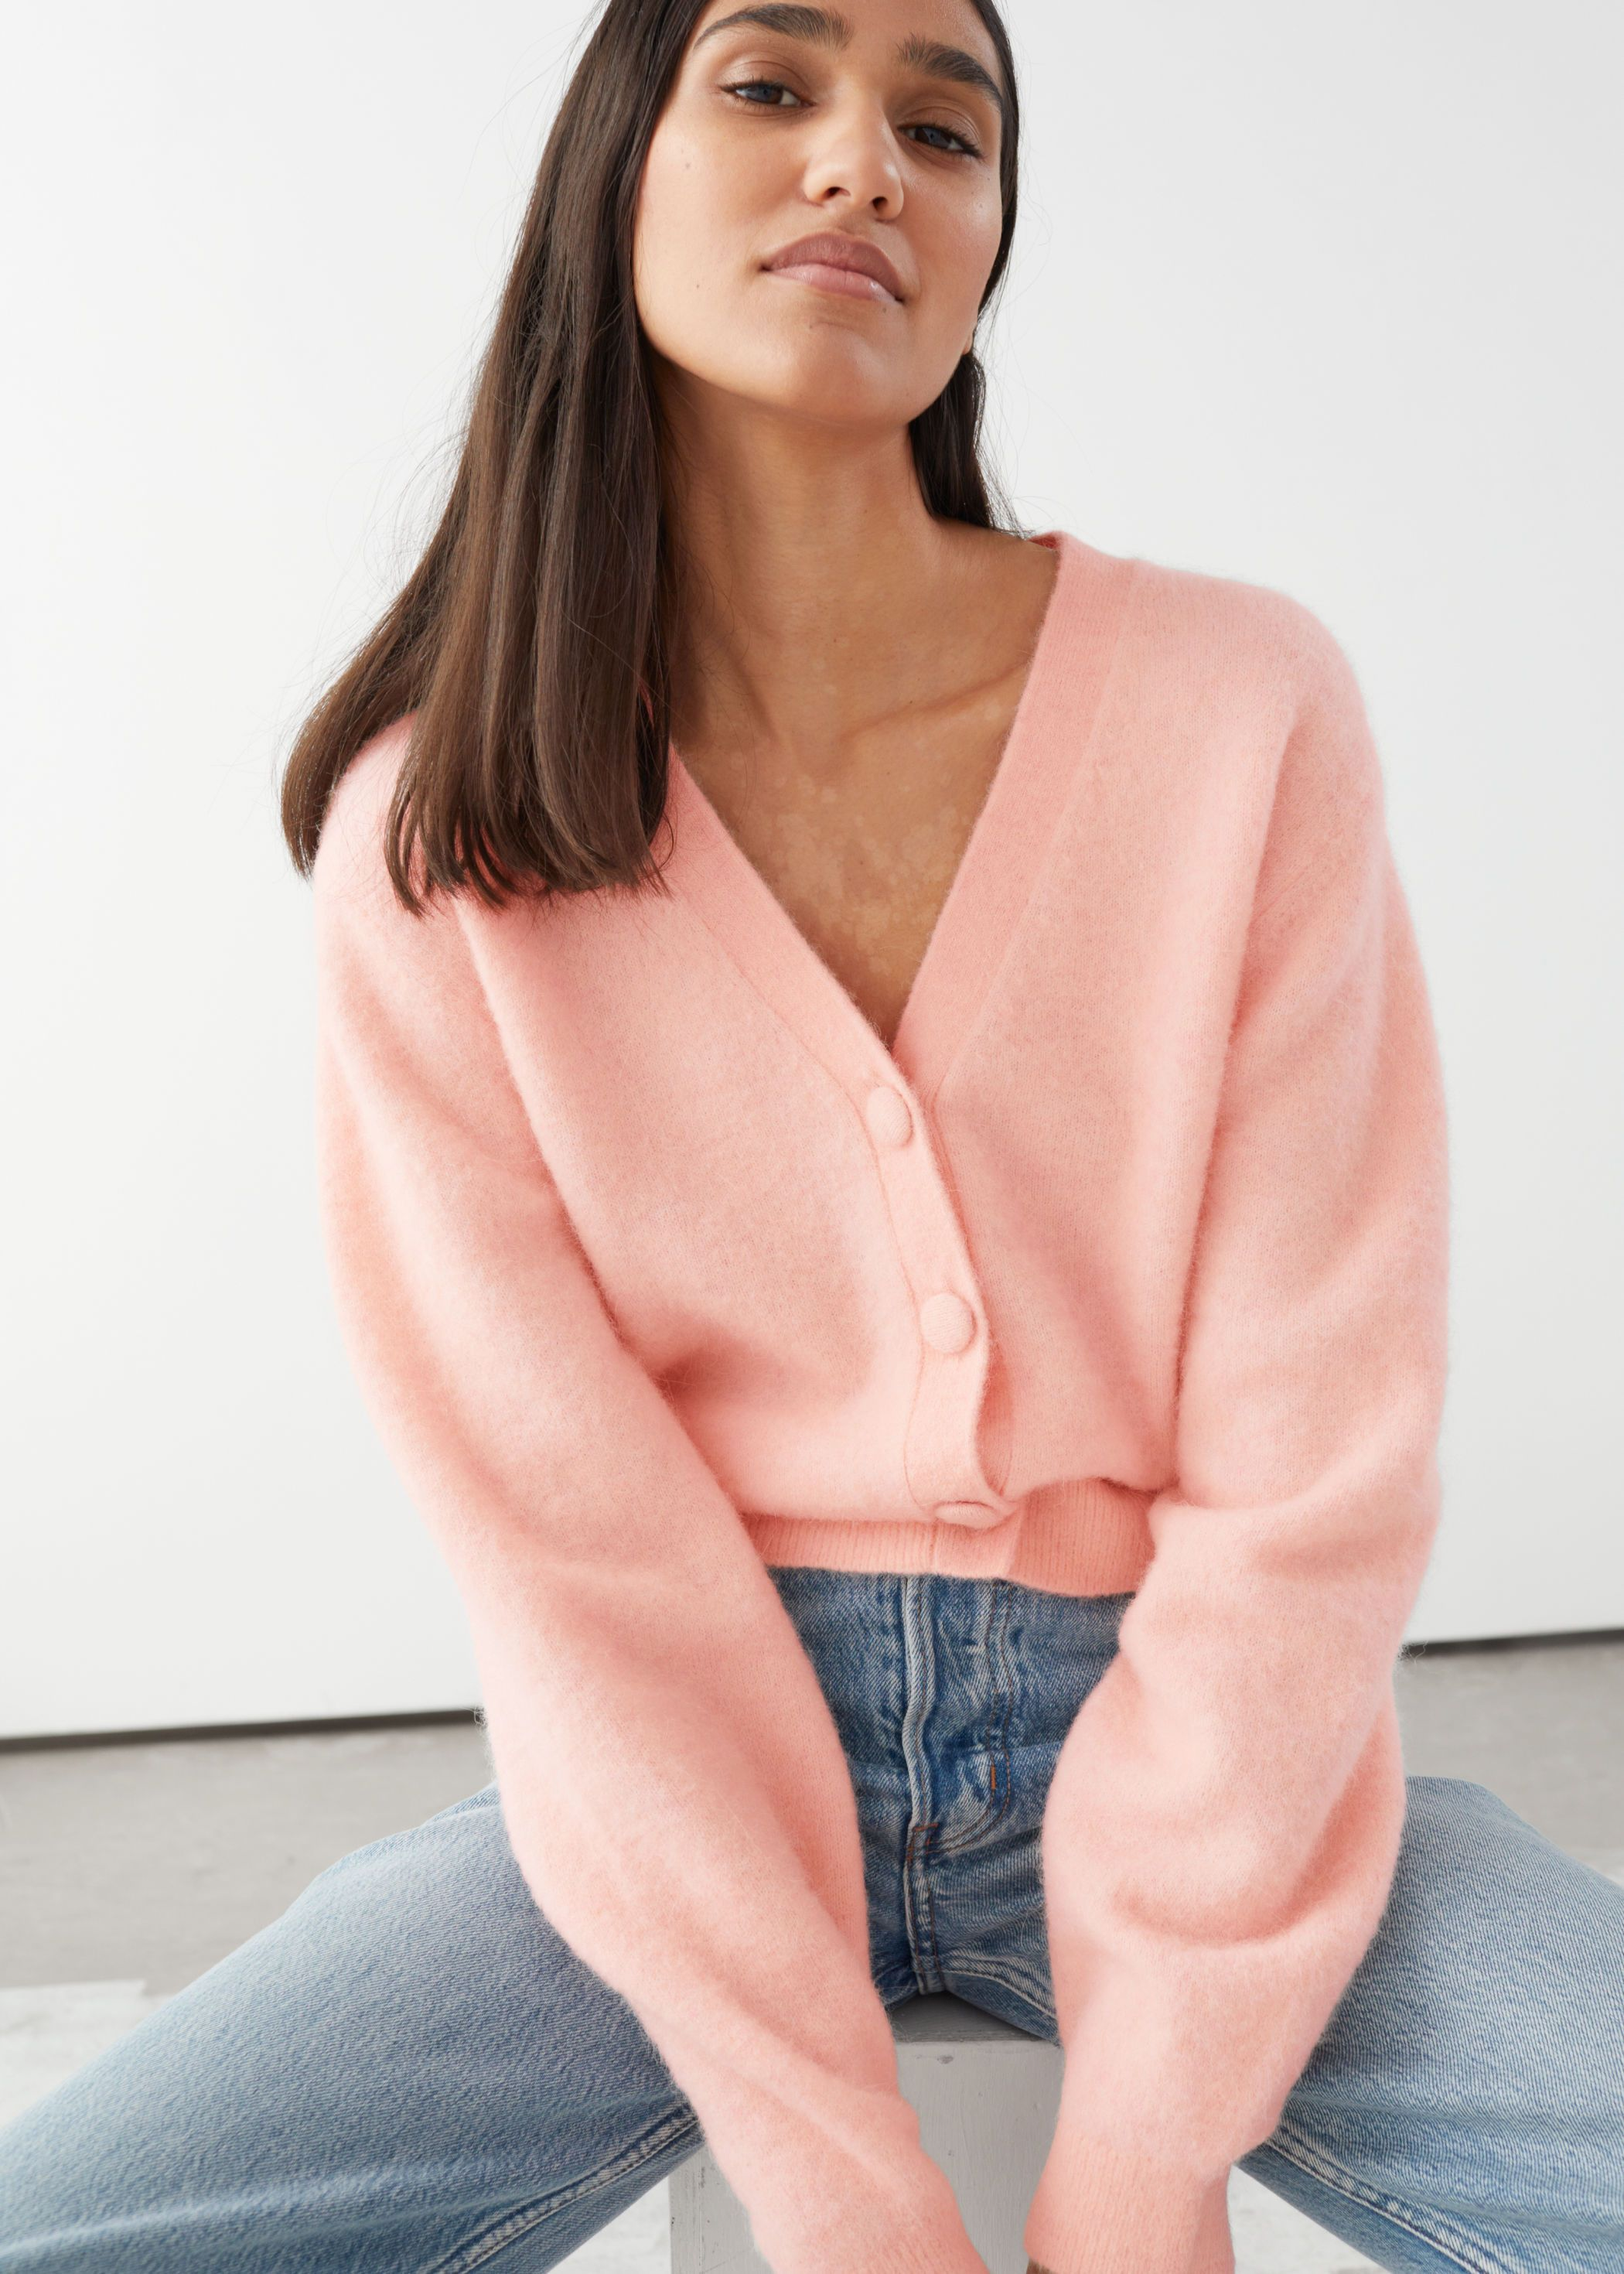 I'm Obsessed With & Other Stories Right Now—Here's Everything I'm Buying 17